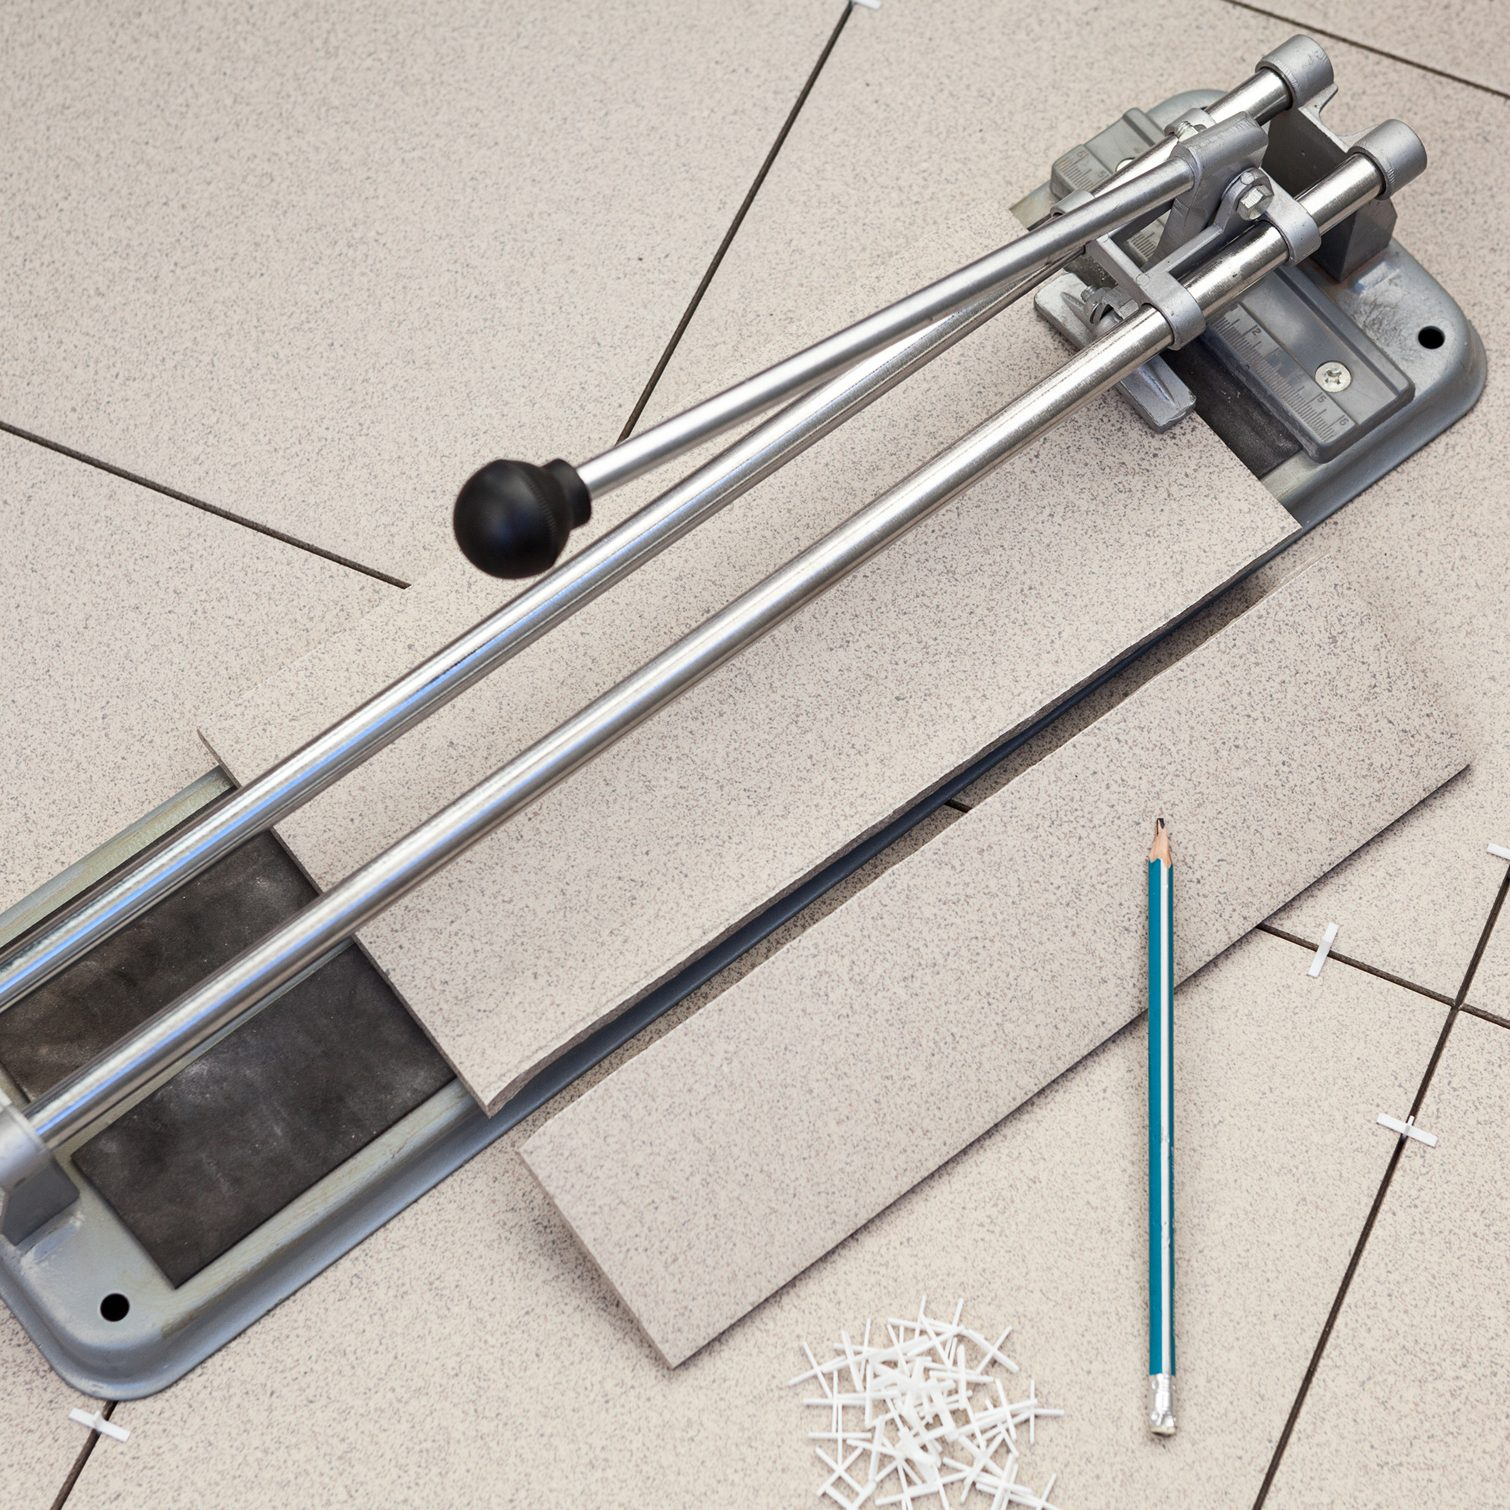 Tile cutters fro tools 4 tiles